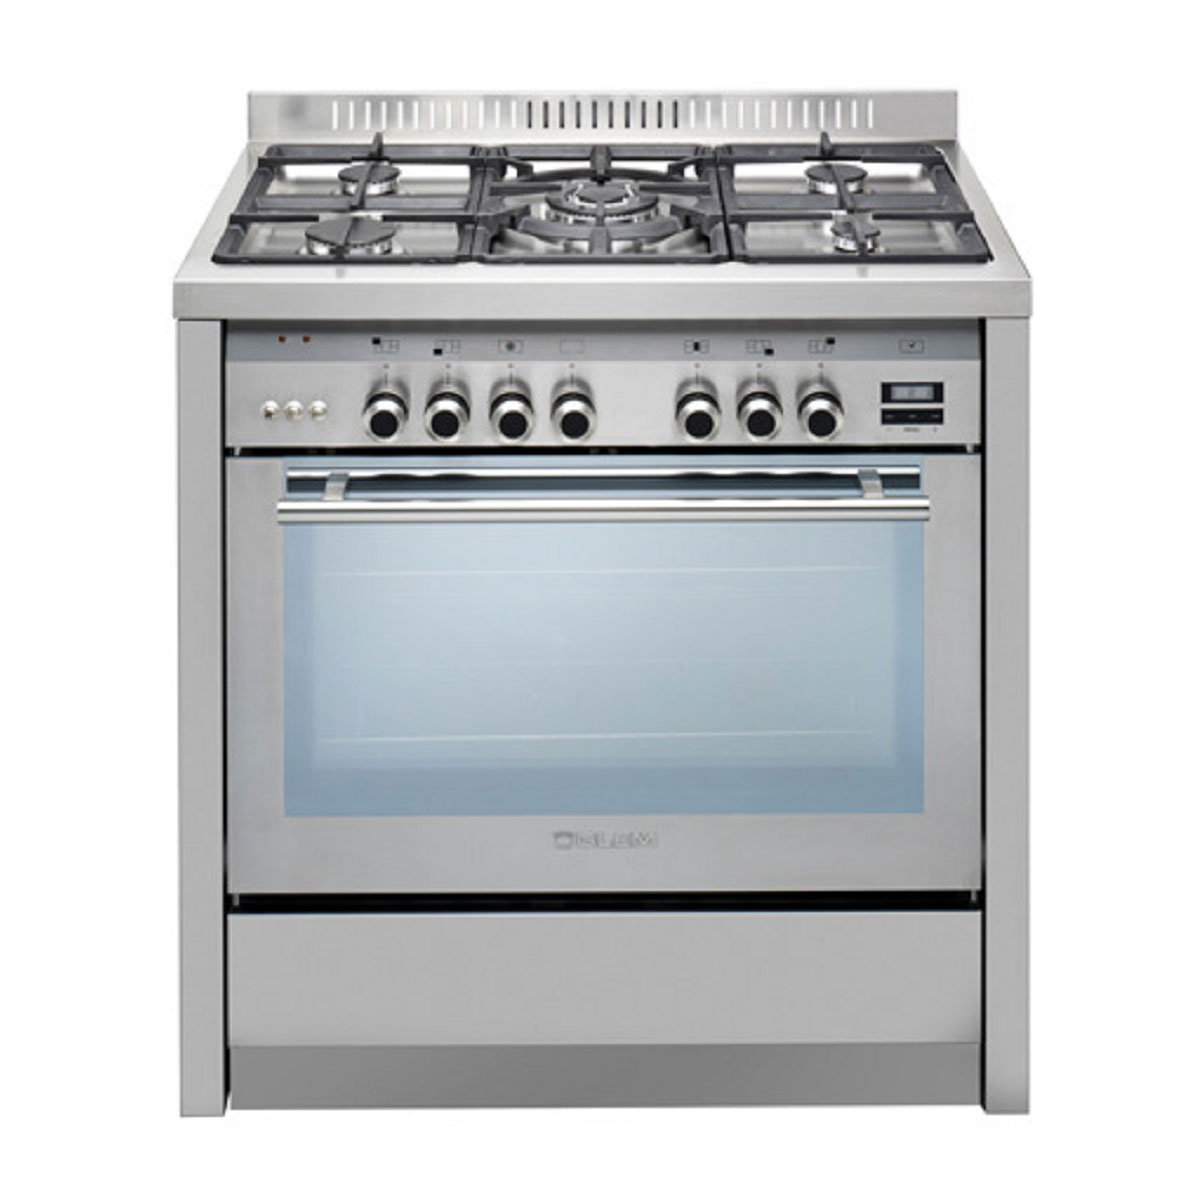 Freestanding Glem Dual Fuel Oven/Stove ML96PROEI3